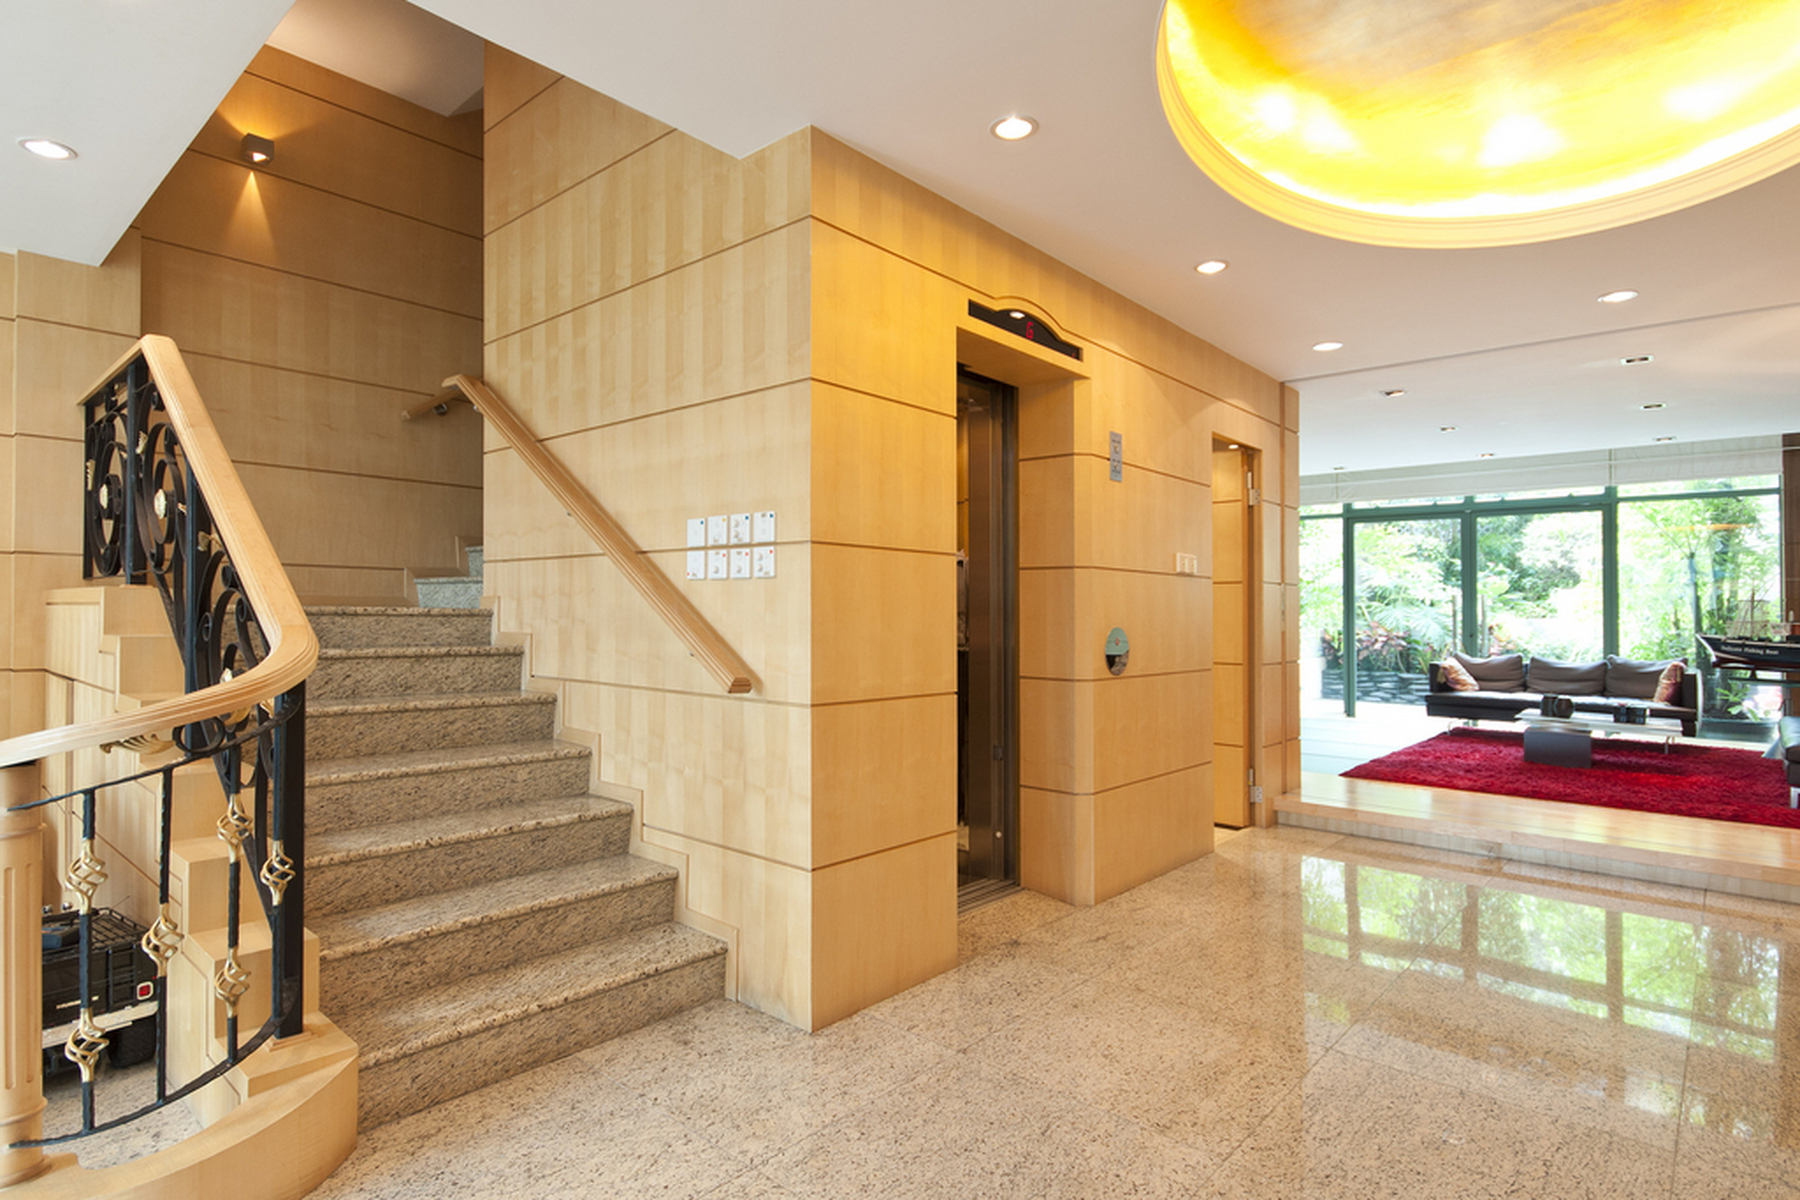 Townhouse for Sale at Hampshire Road, 16-22 Kowloon Tong, Hong Kong, Hong Kong